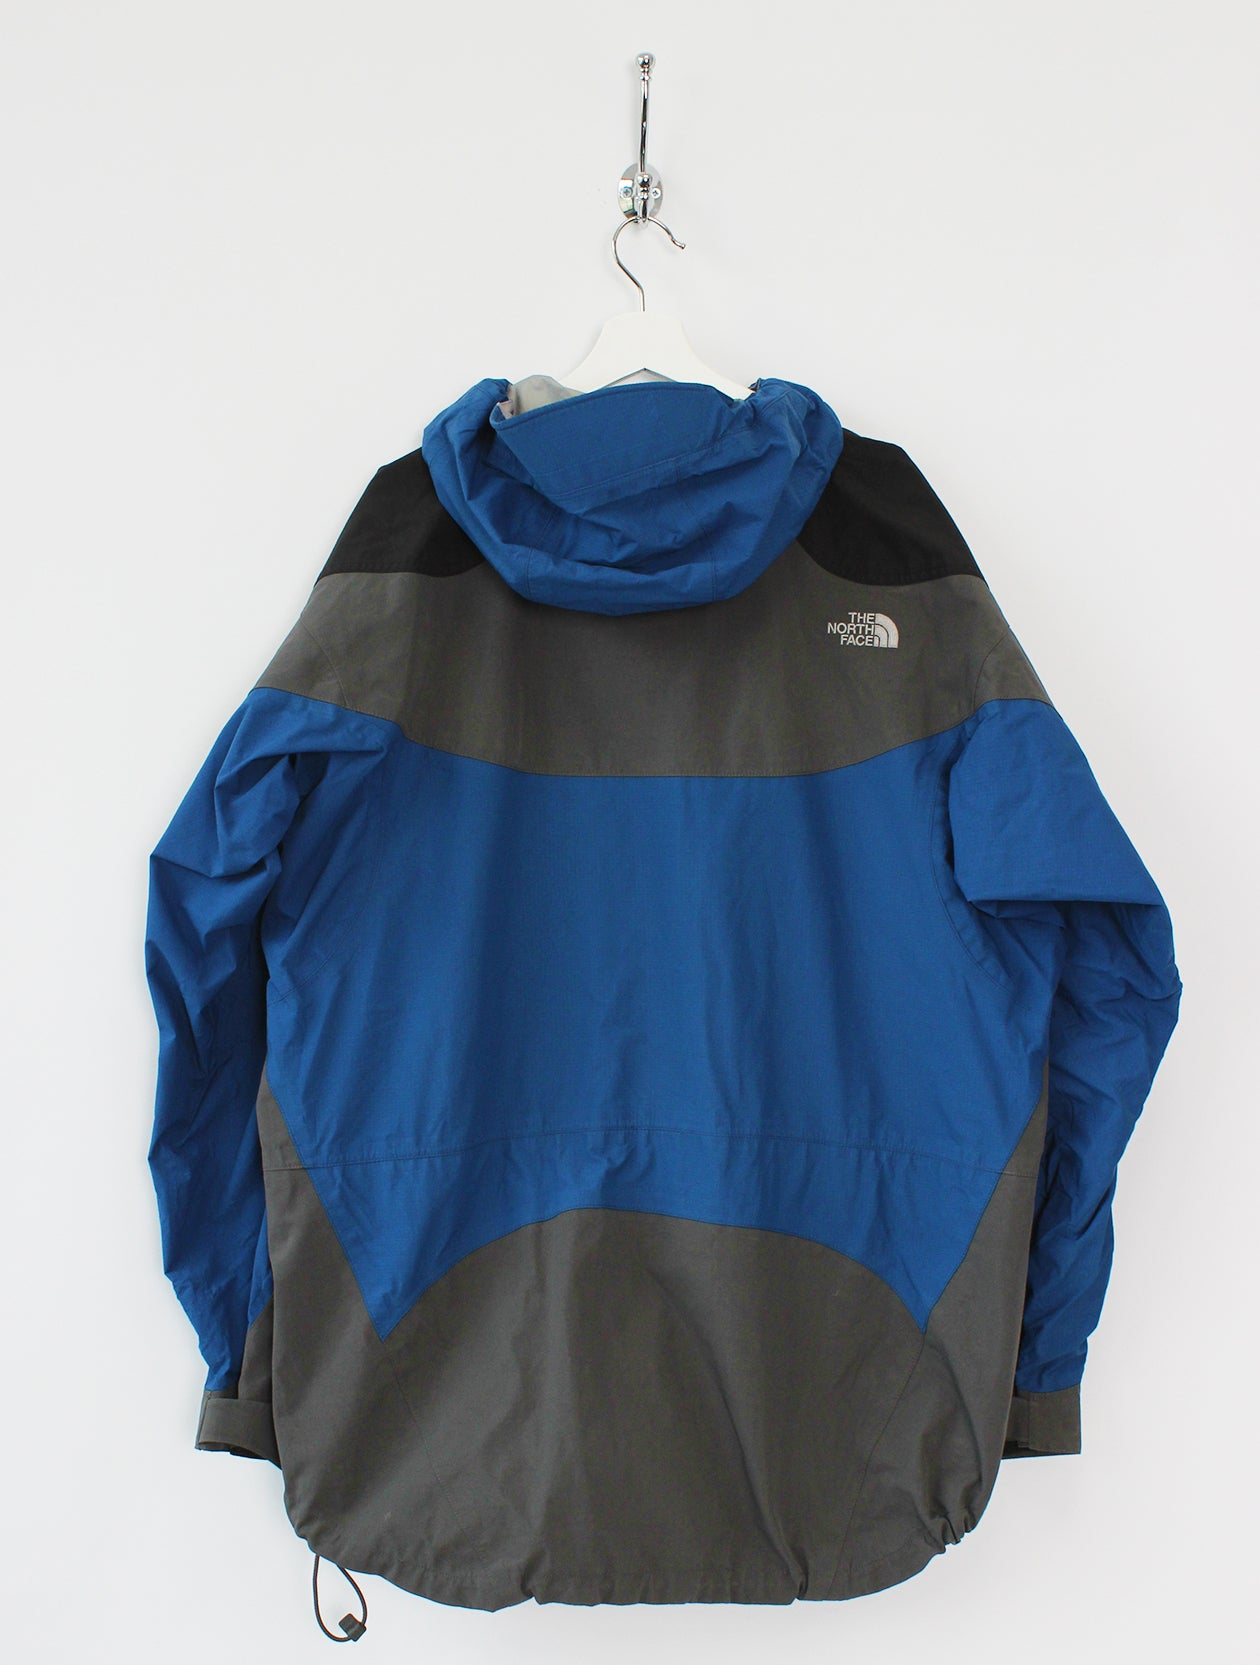 cf3d59d86 The North Face Summit Series Gore-tex XCR Jacket (XL)